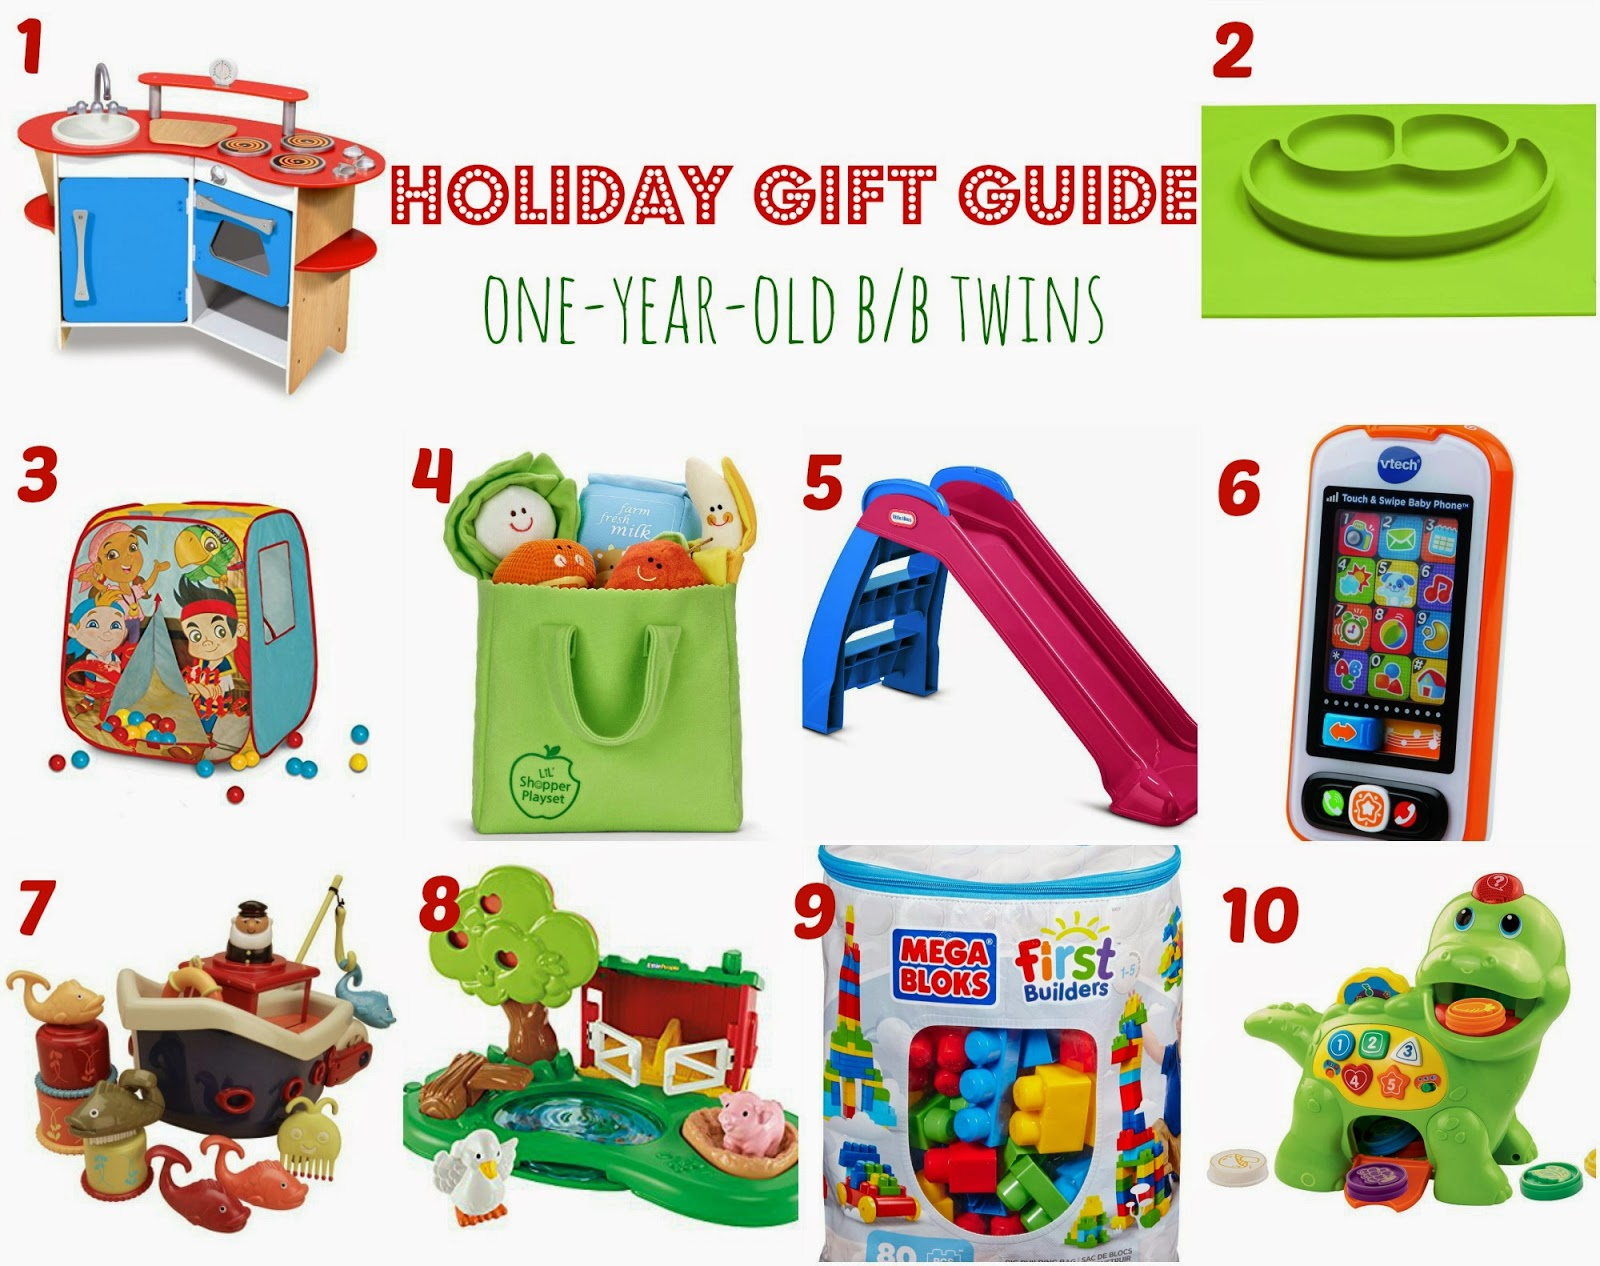 Top Presents for One Year Old Pictures